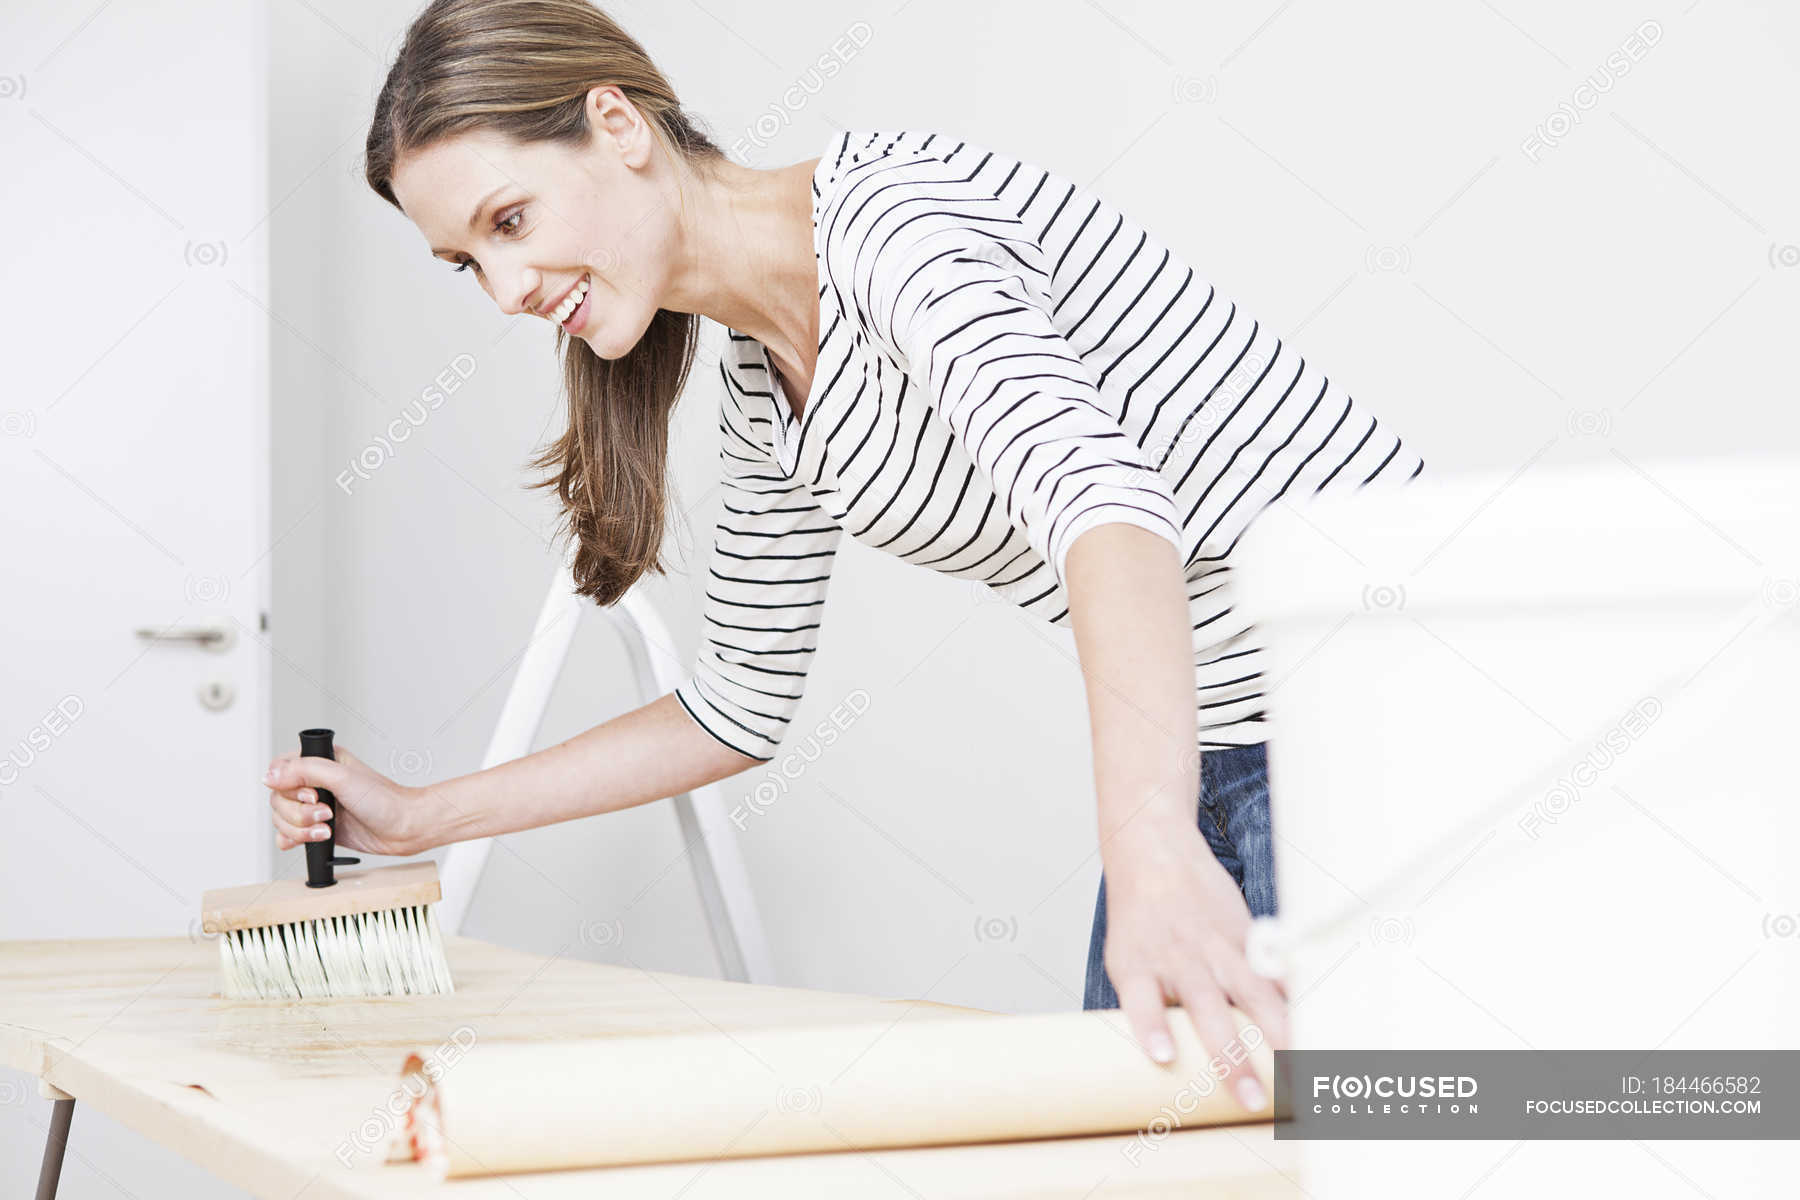 Woman applying glue on wallpaper